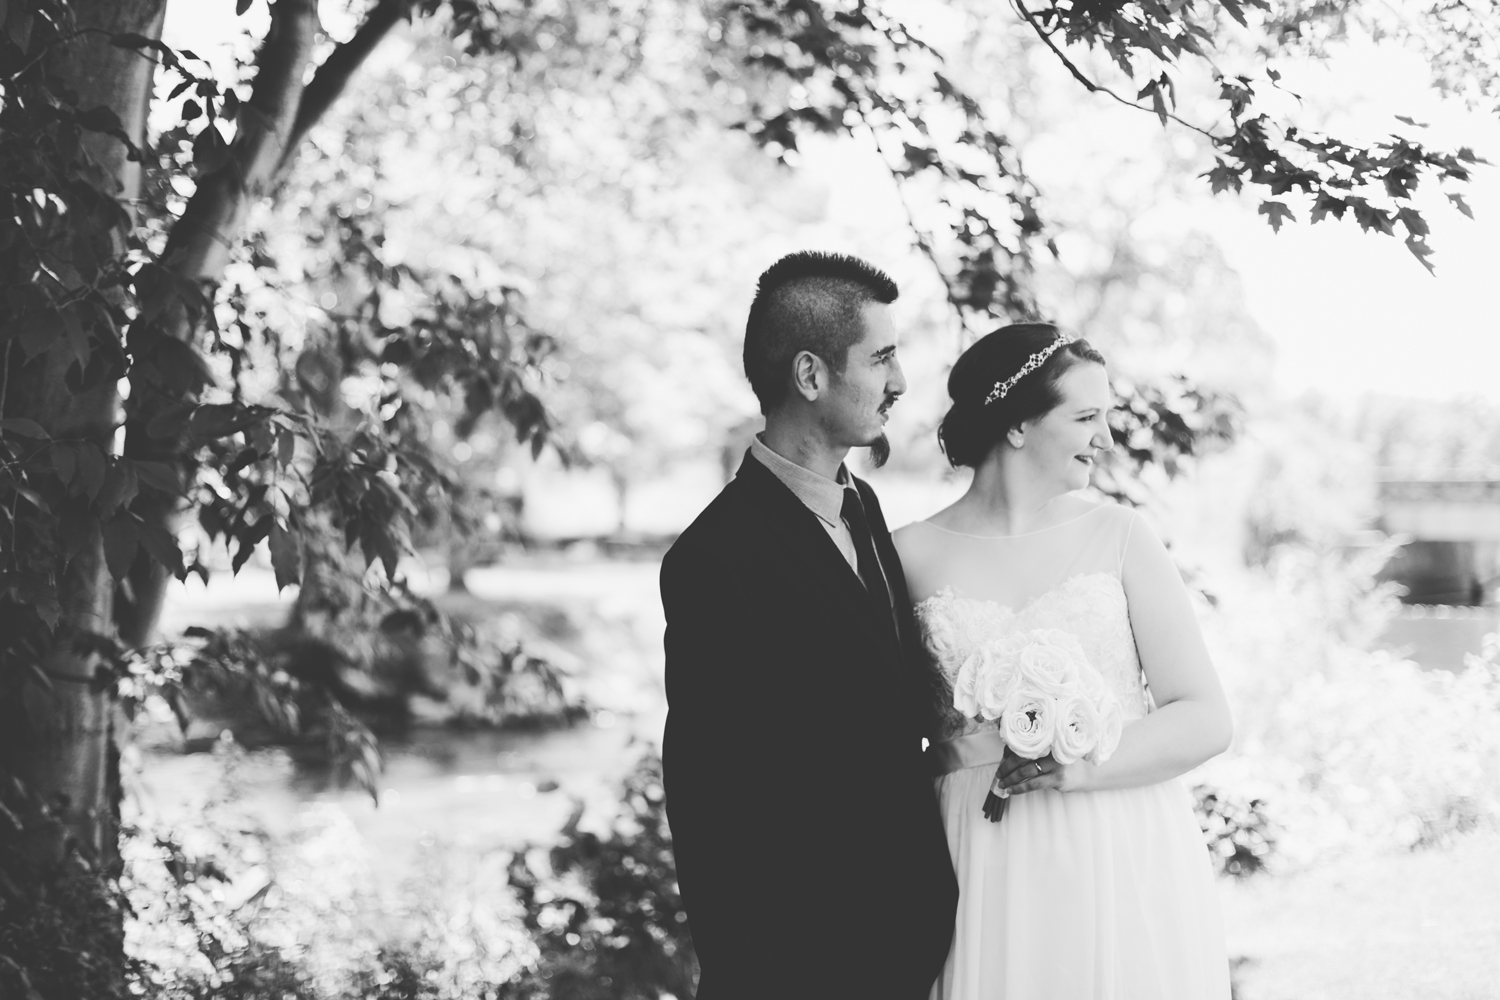 Jillian VanZytveld Photography - Michigan Lifestyle & Wedding Photography - 02.jpg